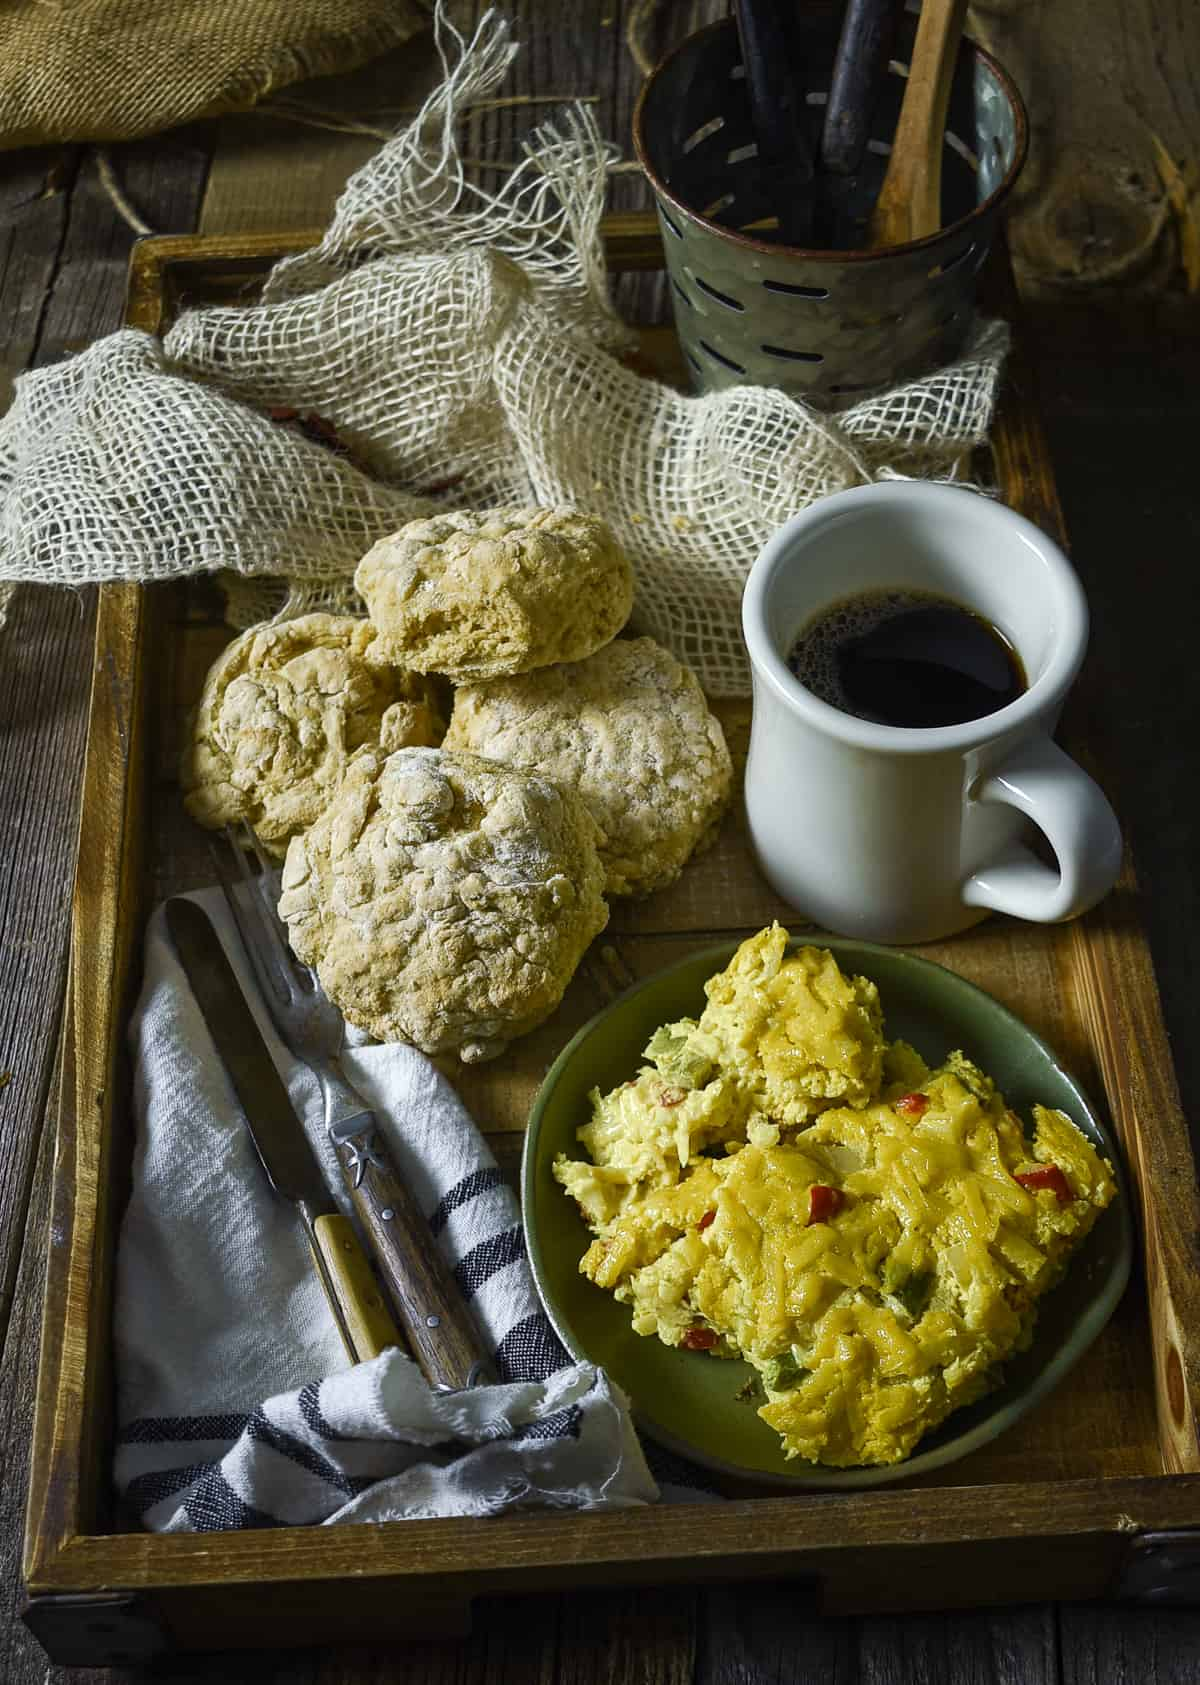 Vegan hash brown casserole on plate with biscuits and coffee.